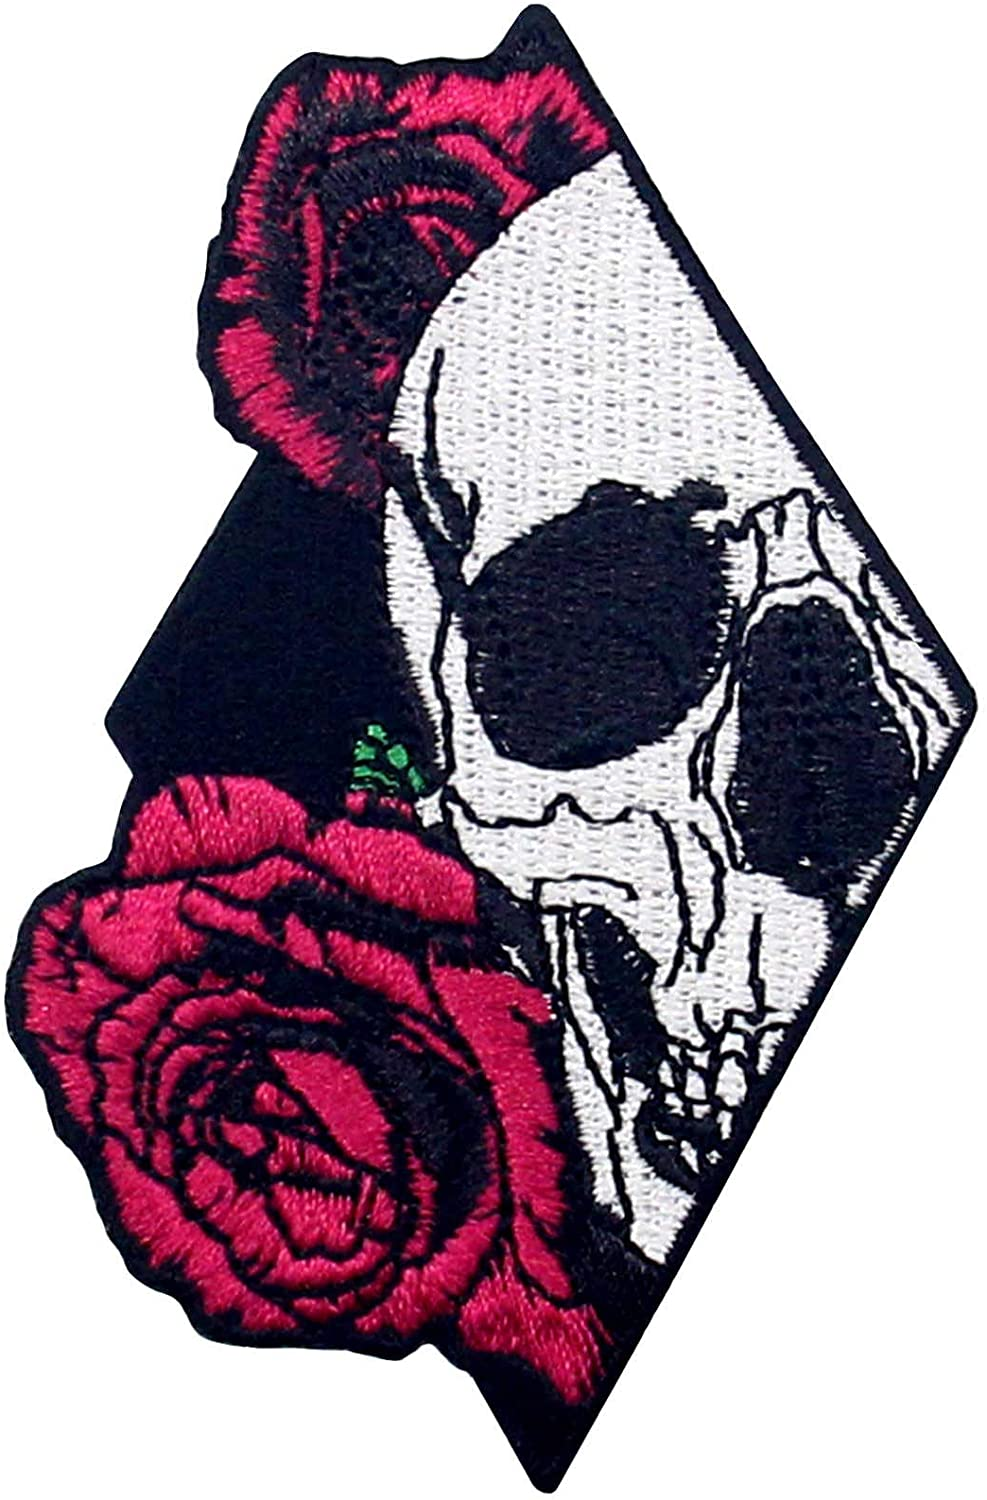 Skull Colorado Springs Mall and Rose Patch Embroidered Iron Emblem On Applique Wholesale Sew